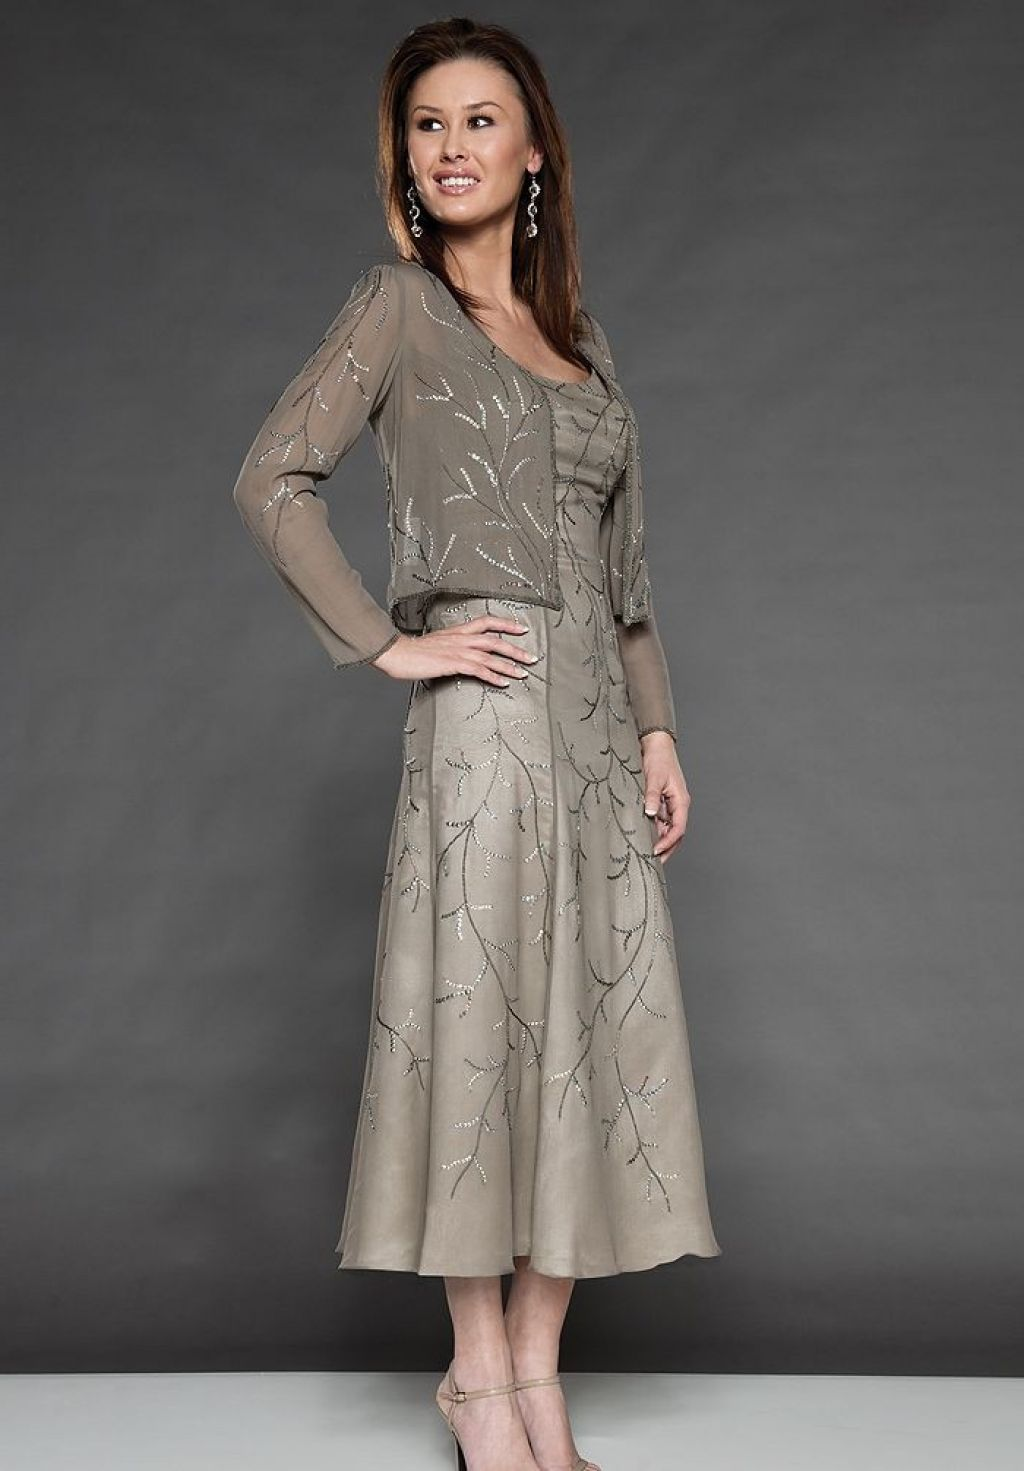 c6abda484a mother of the bride tea length summer dresses, barn wedding - Google Search